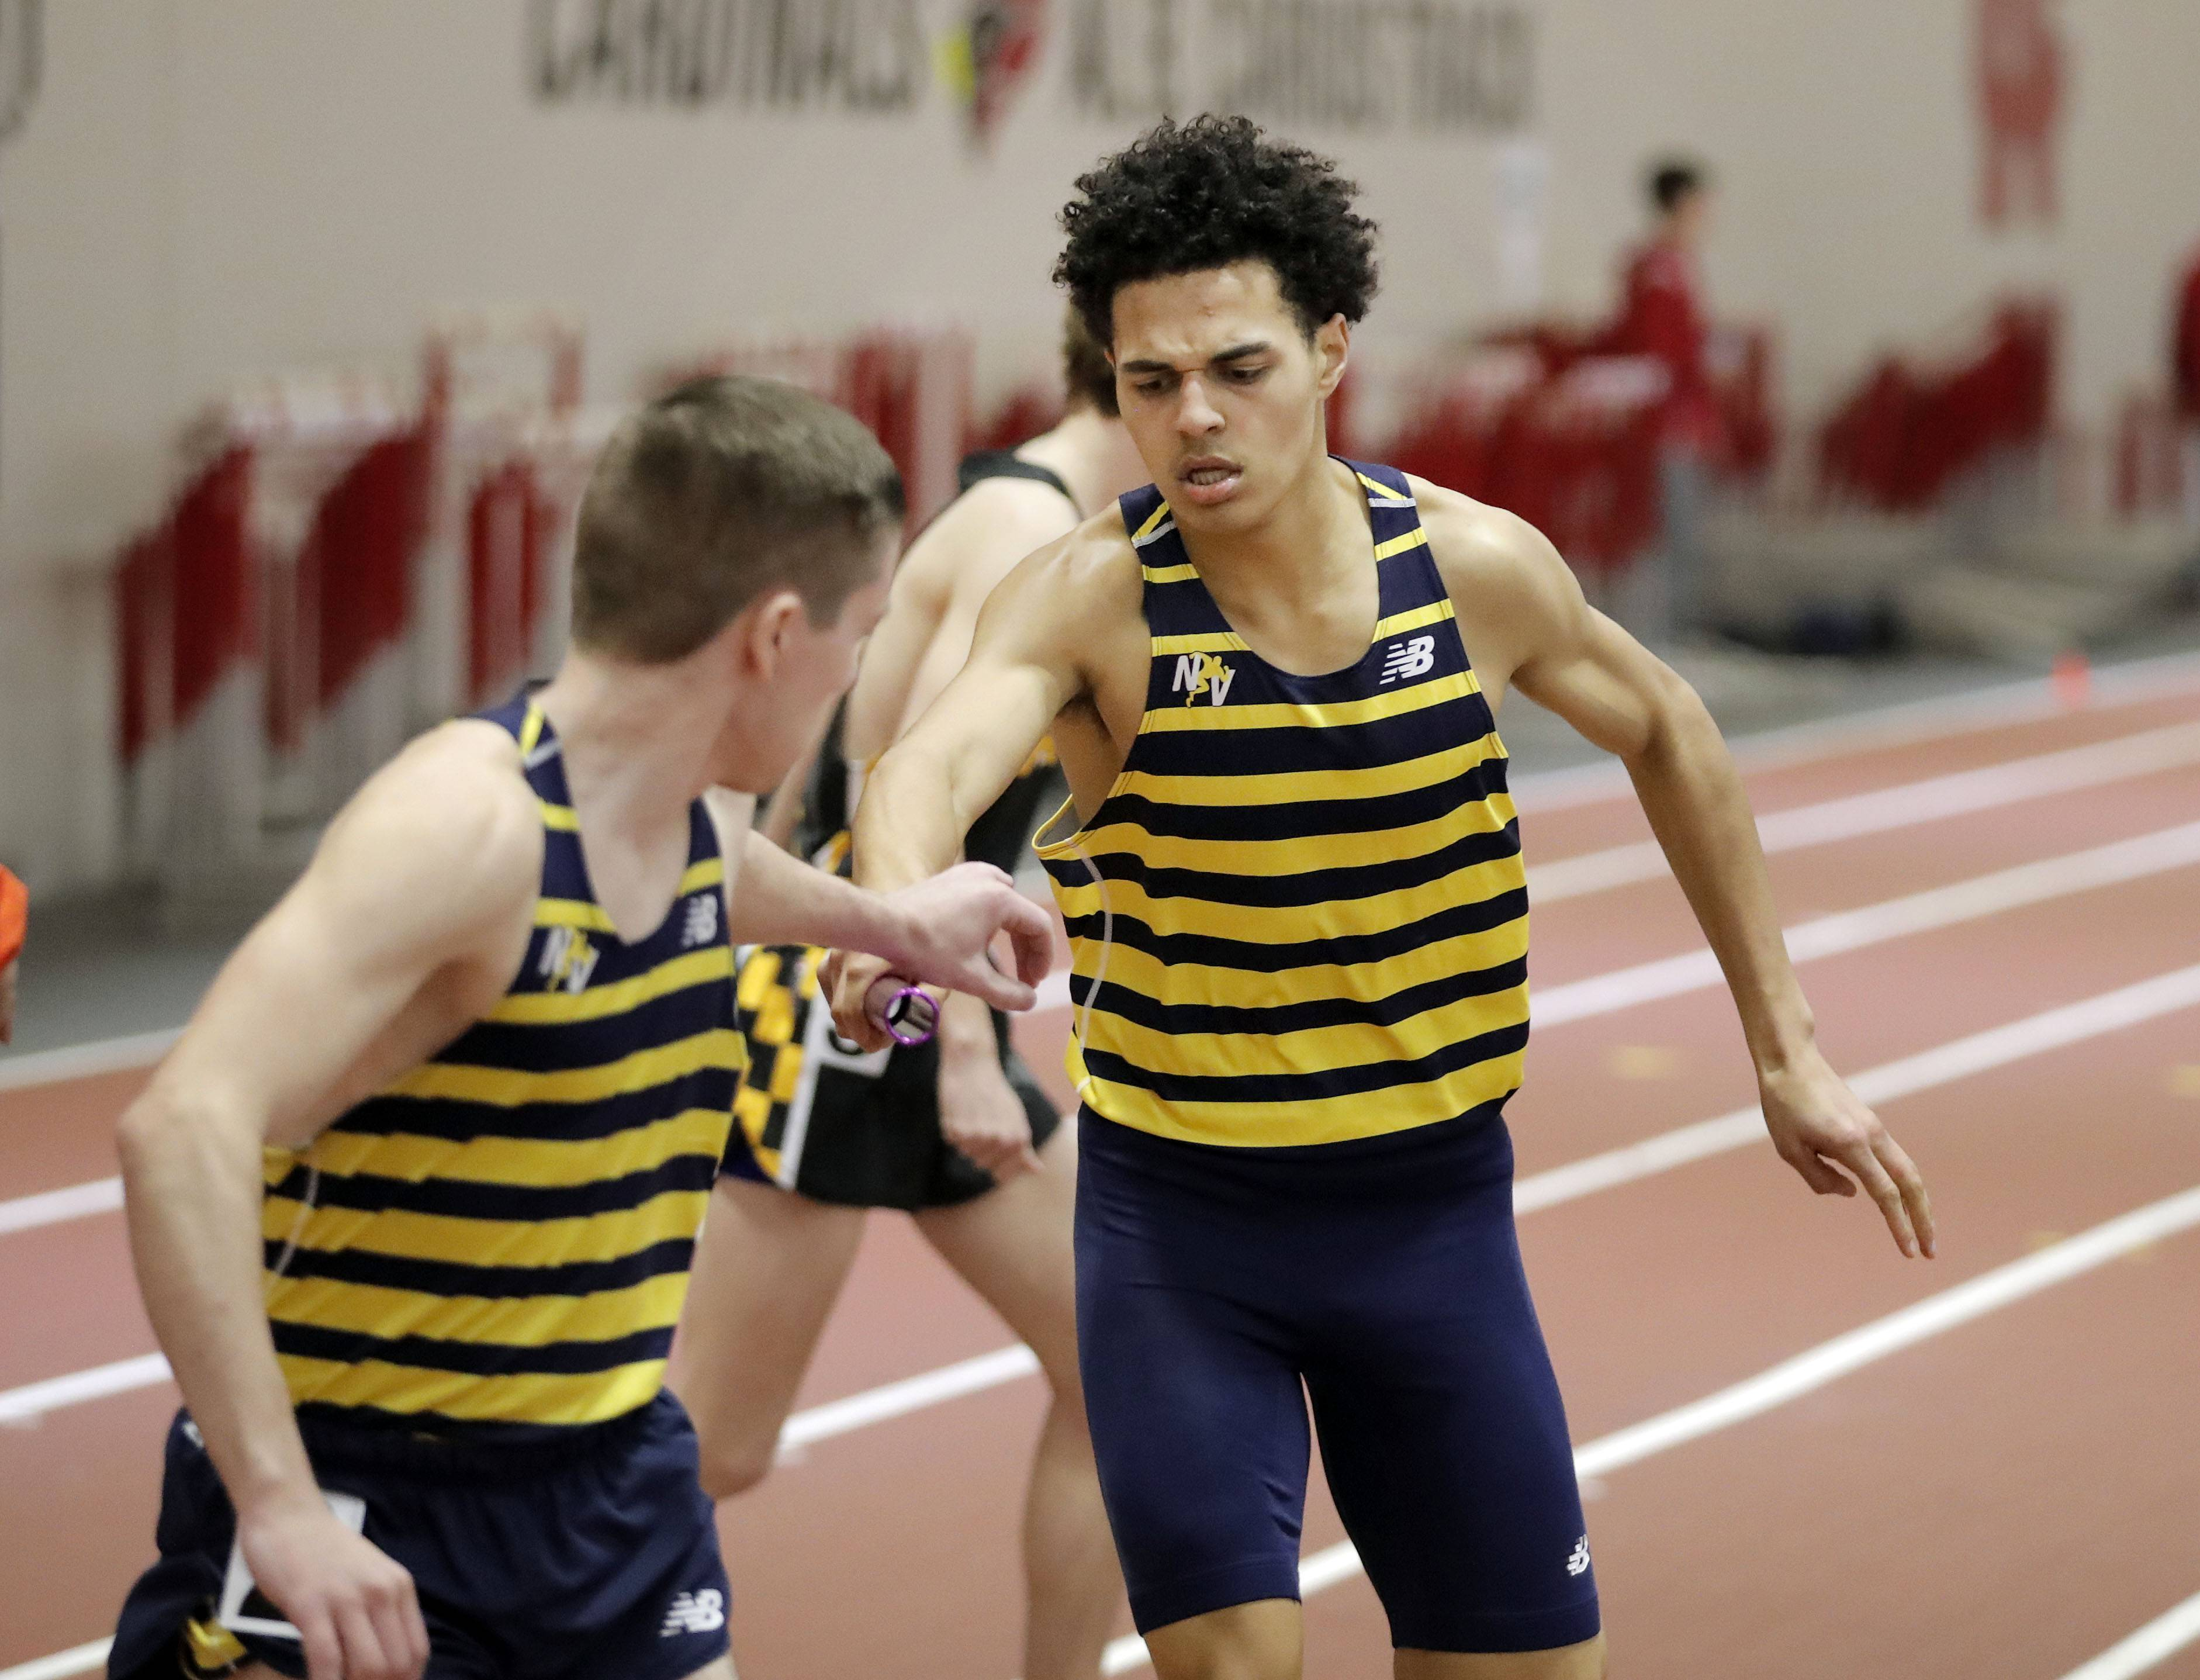 Neuqua Valley's Jordan Matthews, right, hands to Michael O'Connor in the 4x800-meter relay during the DuPage Valley Conference boys track meet at North Central College in Naperville Friday.